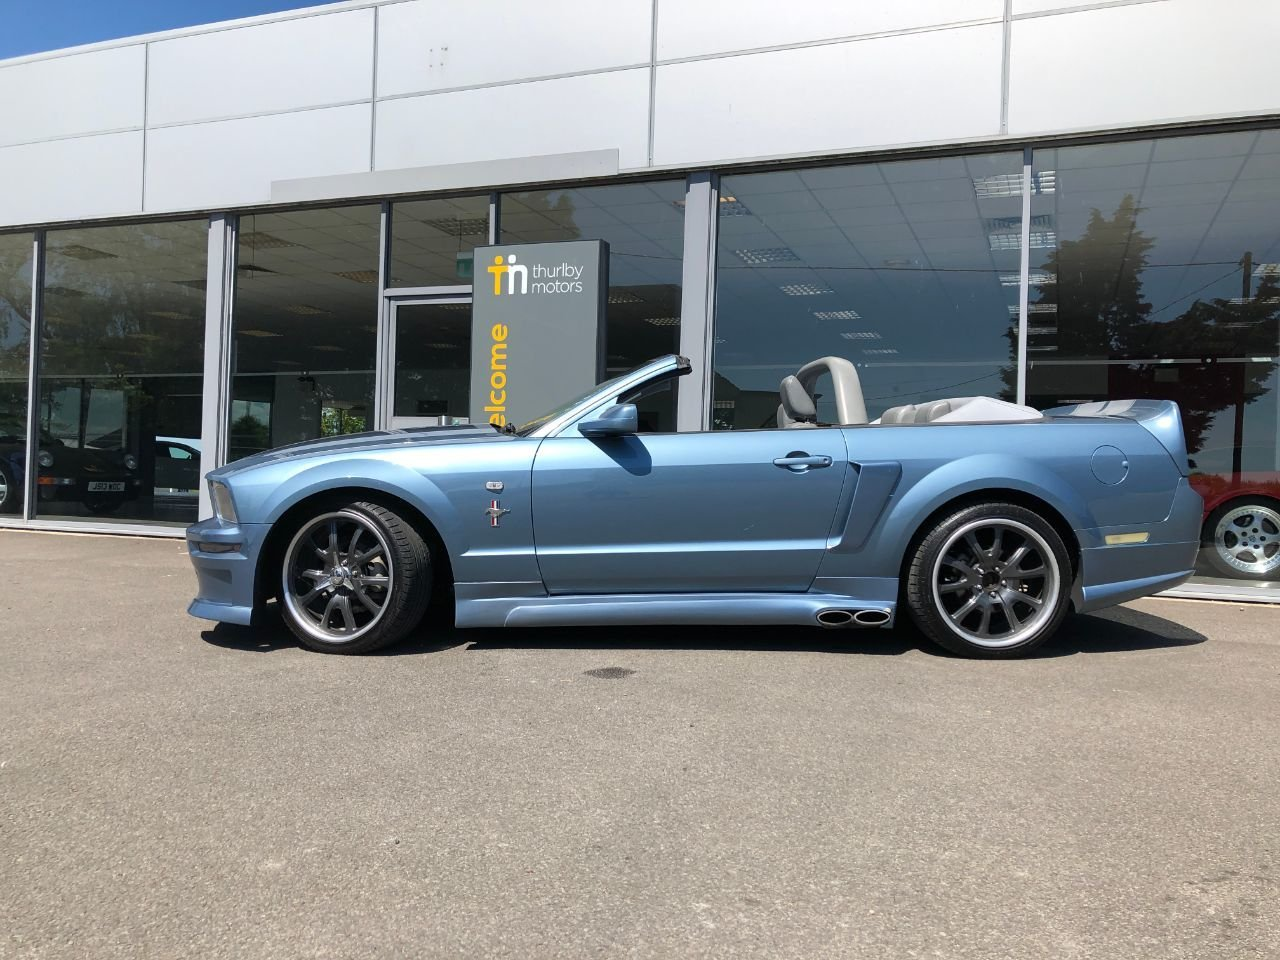 2008 Ford Mustang Convertible For Sale (picture 3 of 6)